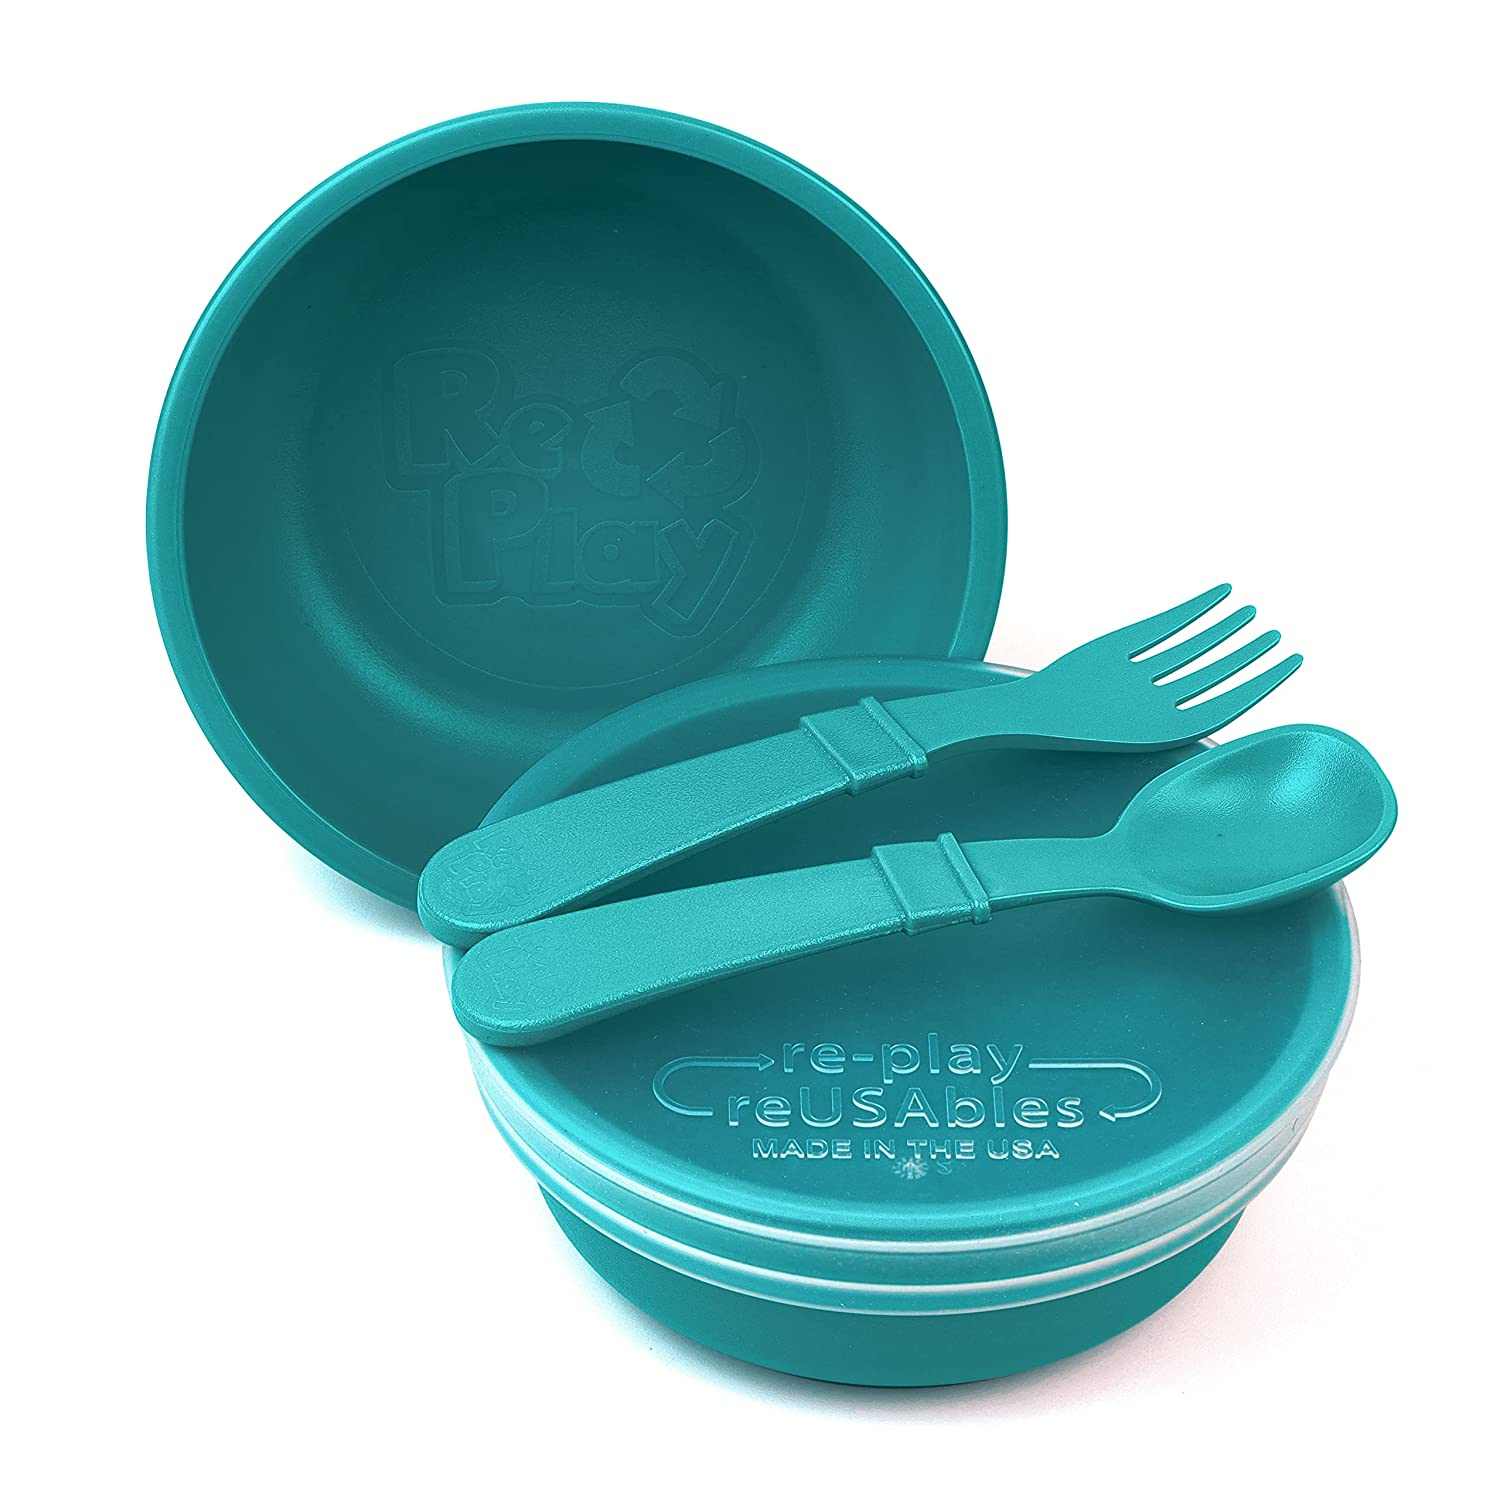 RE-PLAY Made in USA 5 Piece Toddler Feeding Max 71% OFF Set of Wide Ba 2 Free shipping / New